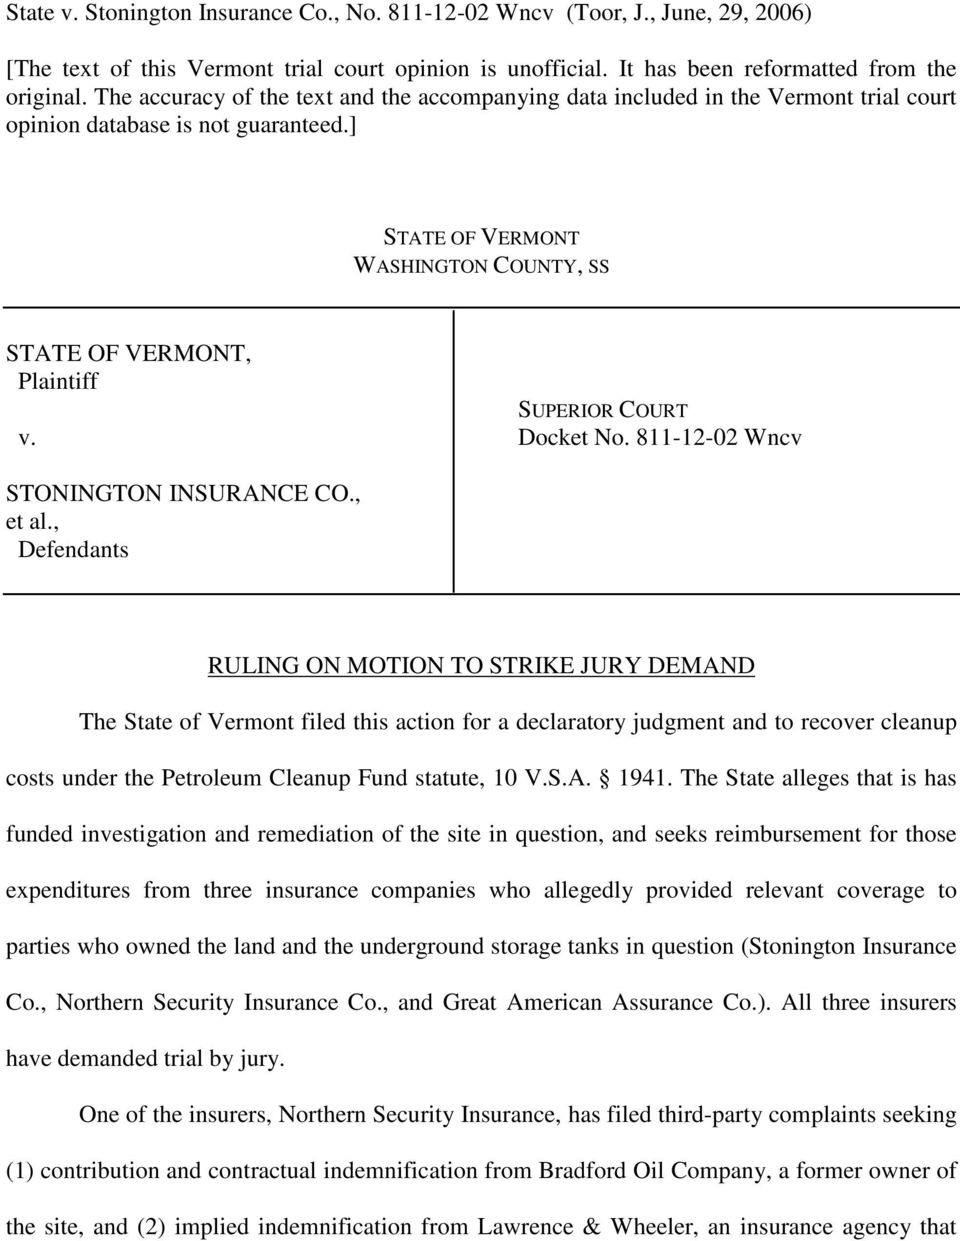 ] STATE OF VERMONT WASHINGTON COUNTY, SS STATE OF VERMONT, Plaintiff SUPERIOR COURT v. Docket No. 811-12-02 Wncv STONINGTON INSURANCE CO., et al.